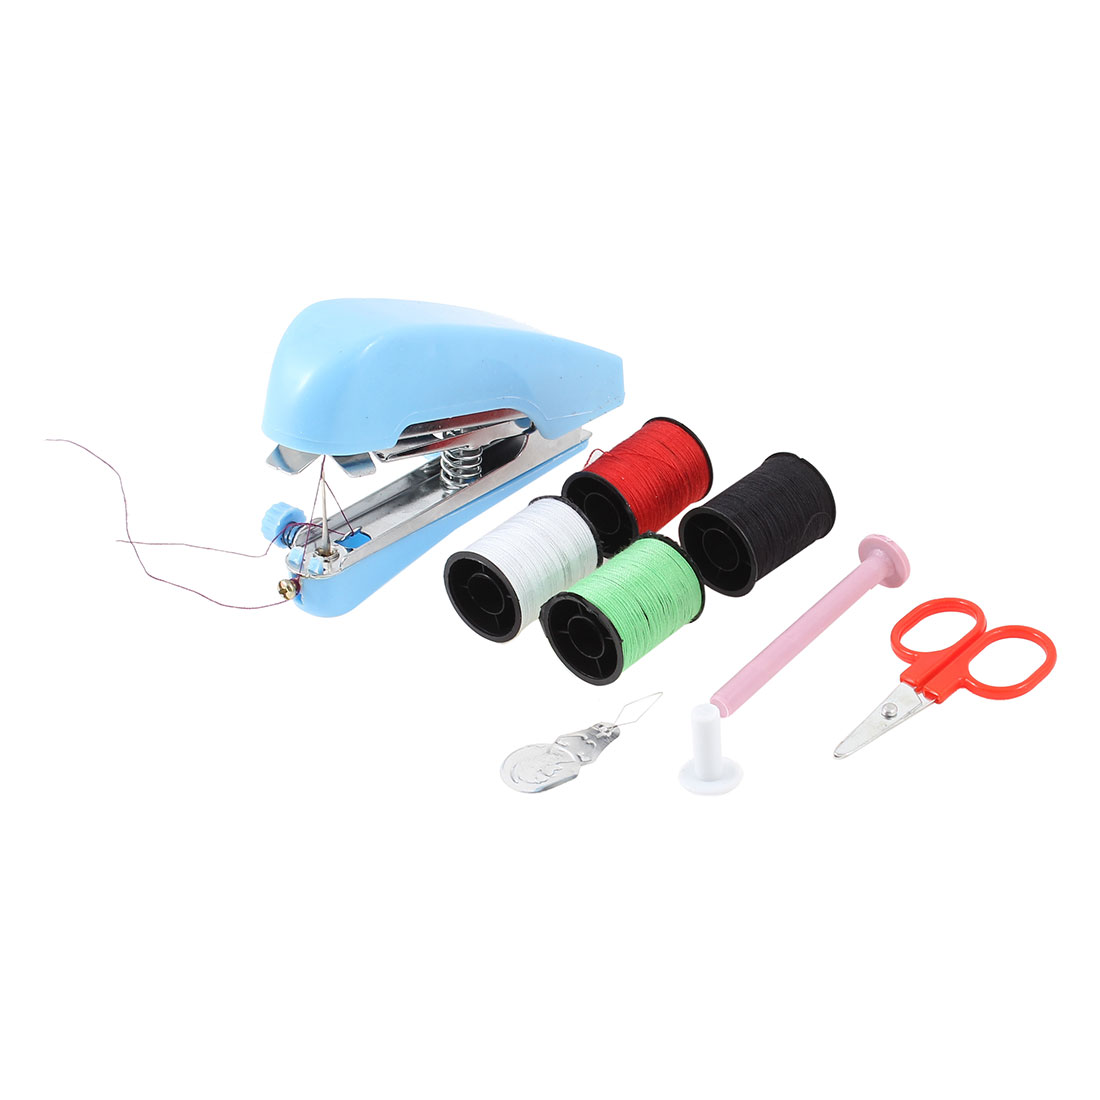 Housewife Portable Handheld Mini Sewing Machine Scissor Spools Set